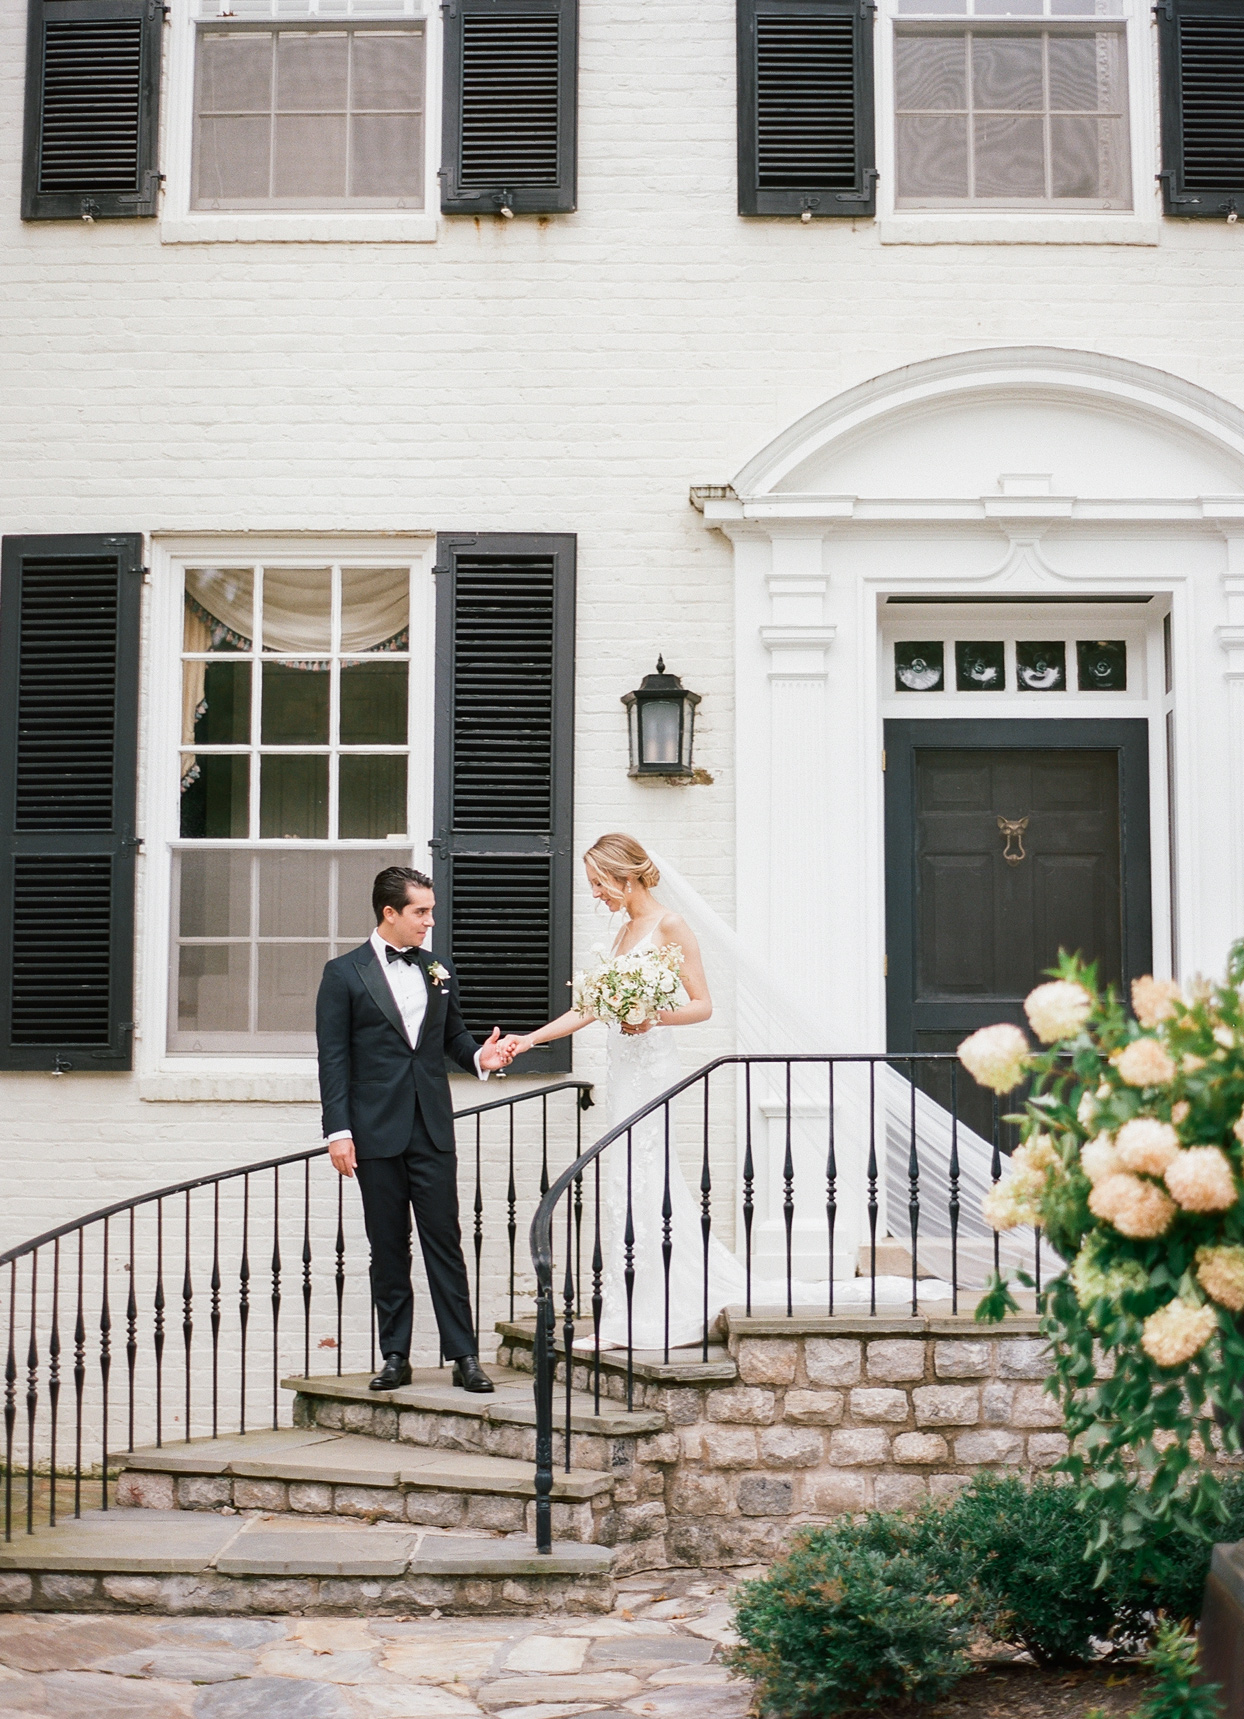 bride and groom standing outside on stone stairs during first look